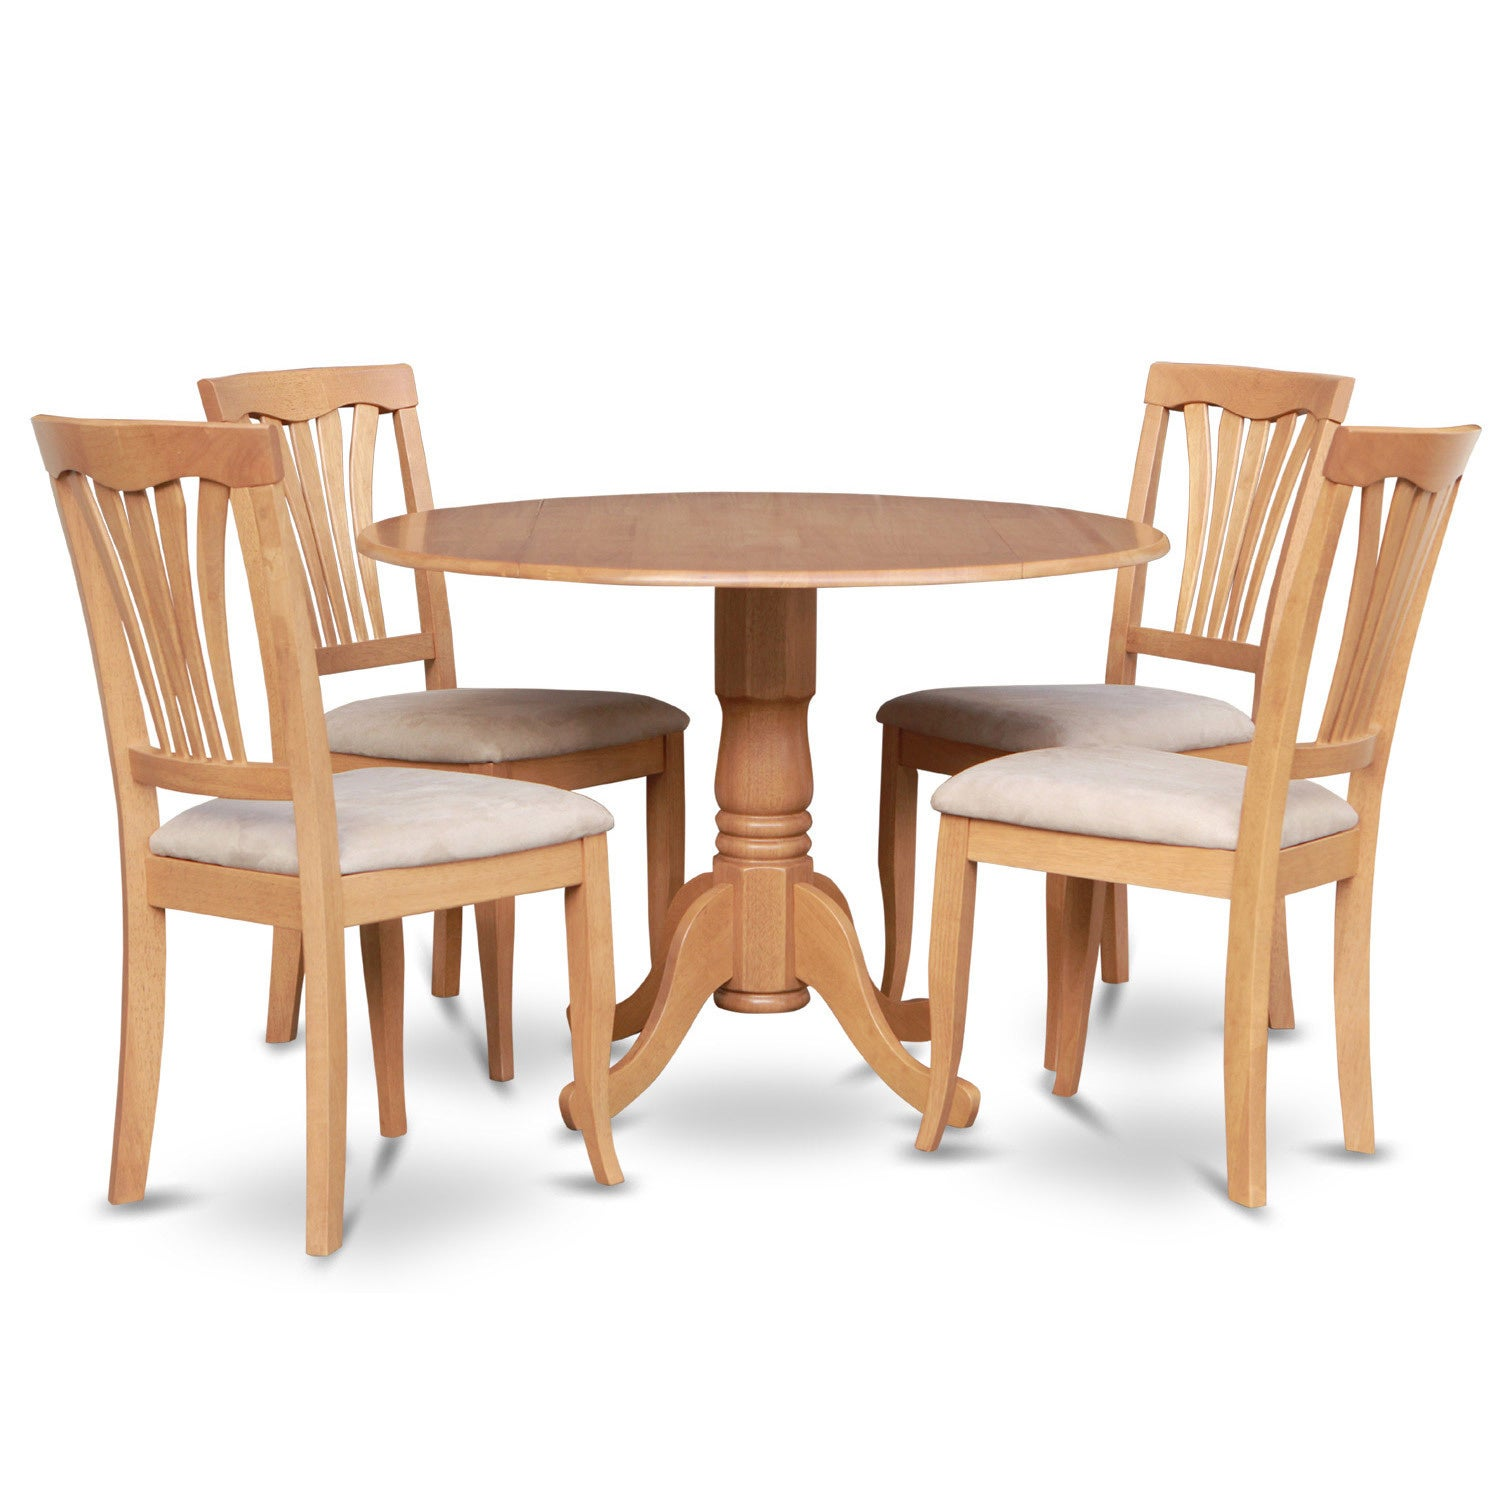 5pc Set Round Dinette Kitchen Table W 4 Microfiber: Oak Round Kitchen Table And 4 Kitchen Chairs 5-piece